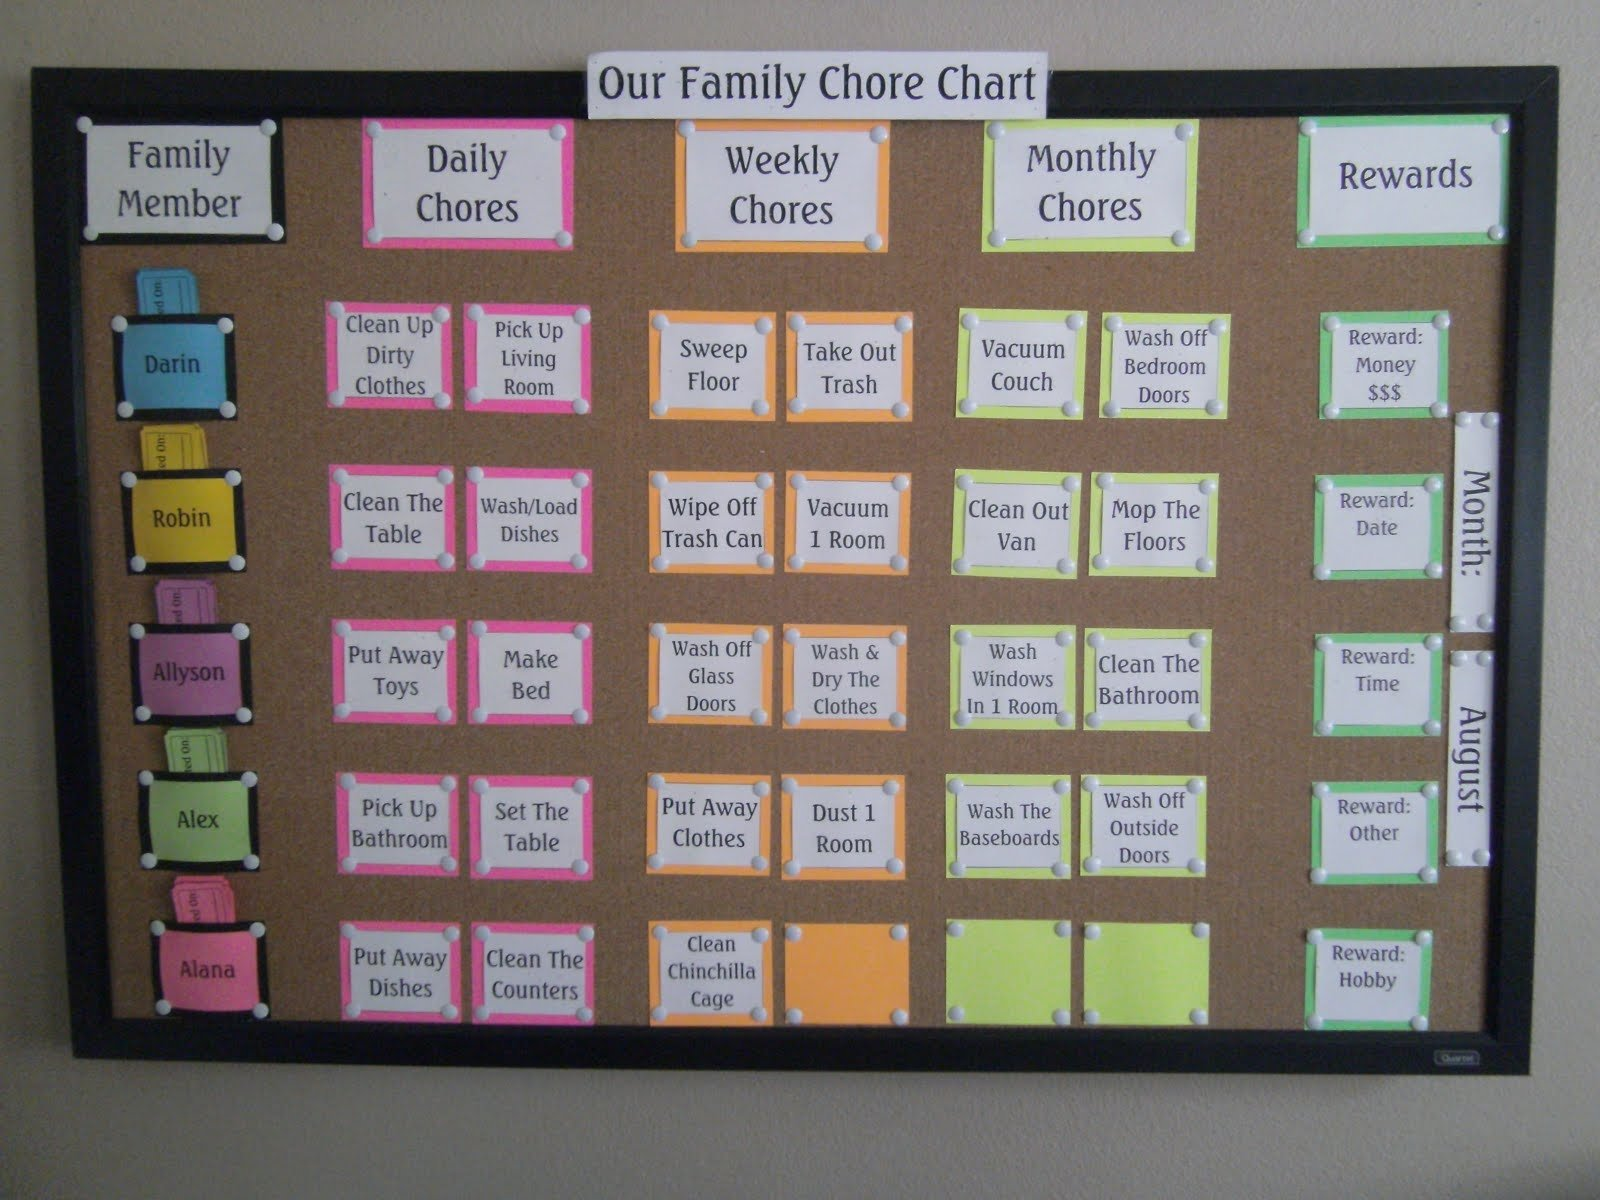 robbygurl's creations: family chore chart